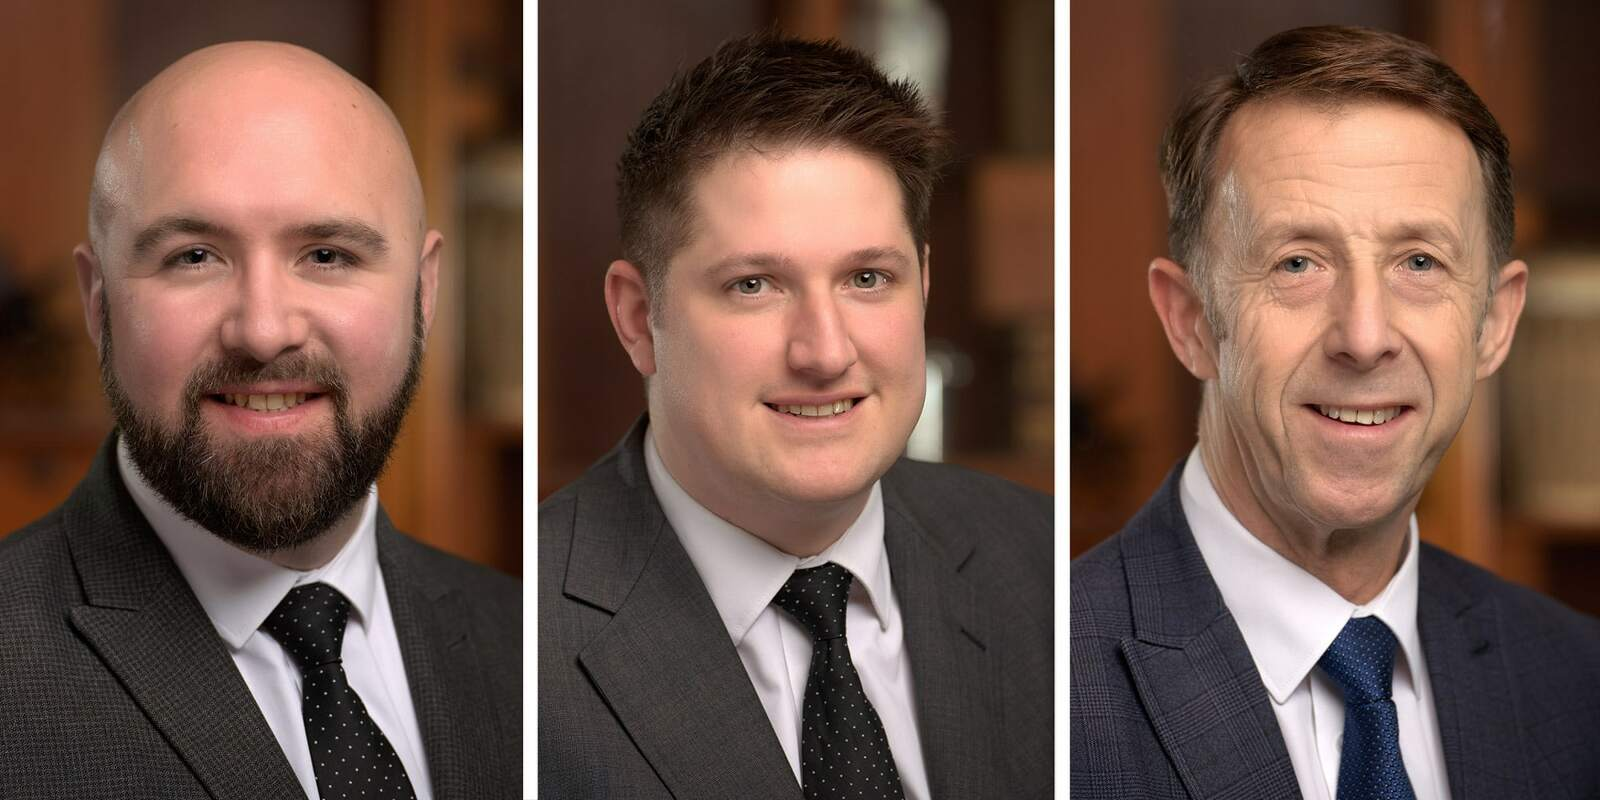 Three corporate headshots of men working for a funeral drector firm in Surrey.